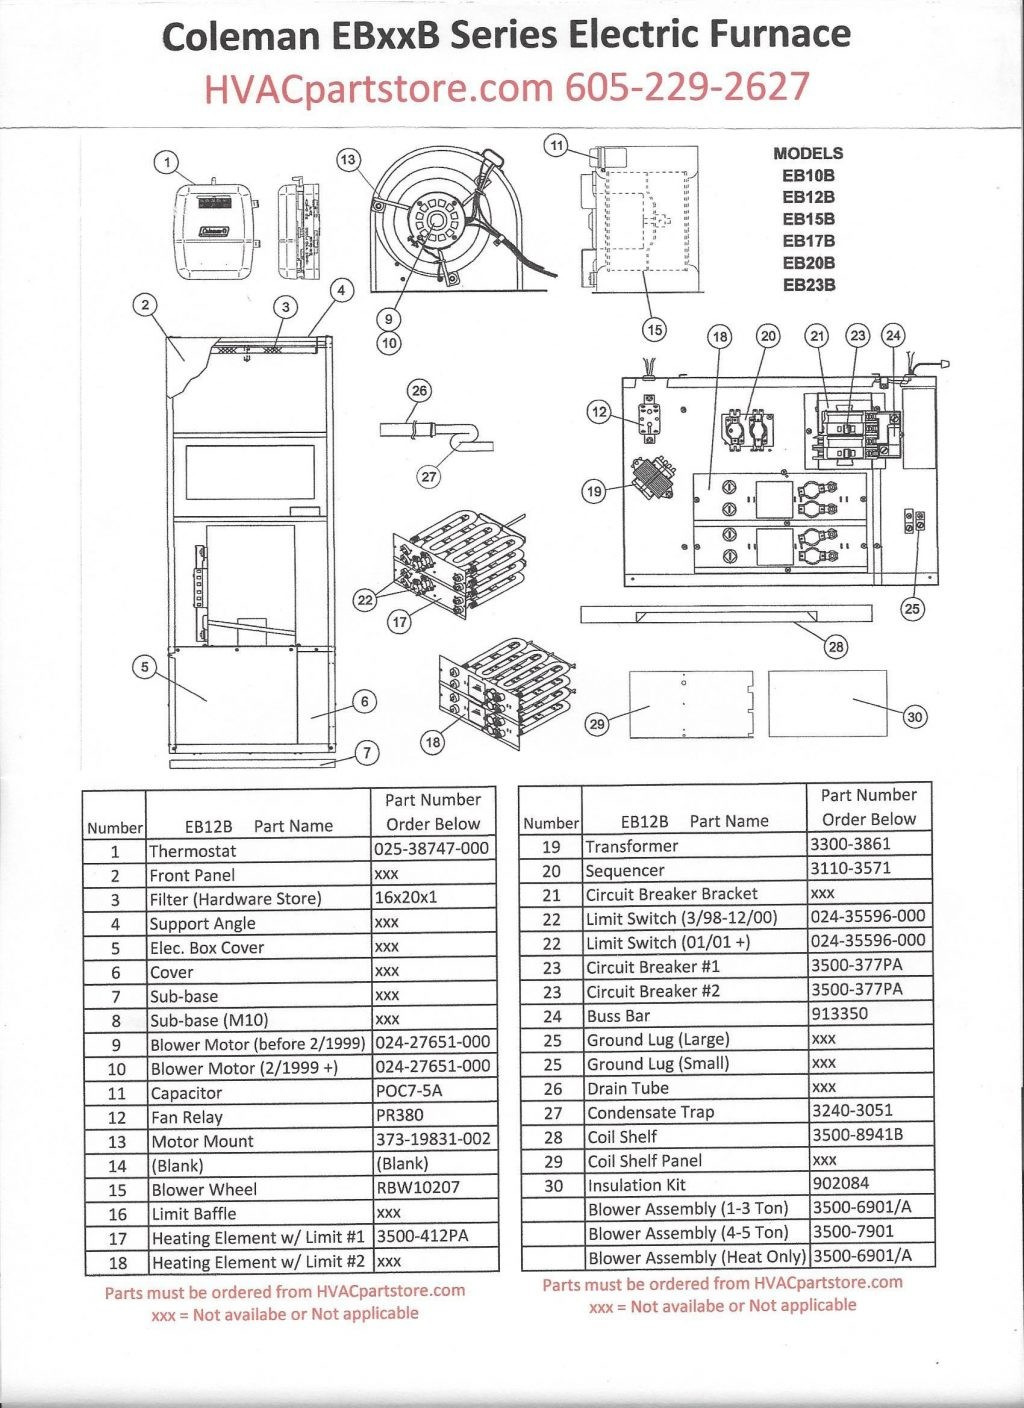 Williamson Gas Furnace Wiring Diagram Outlet Connections Best Lennoxic Heater